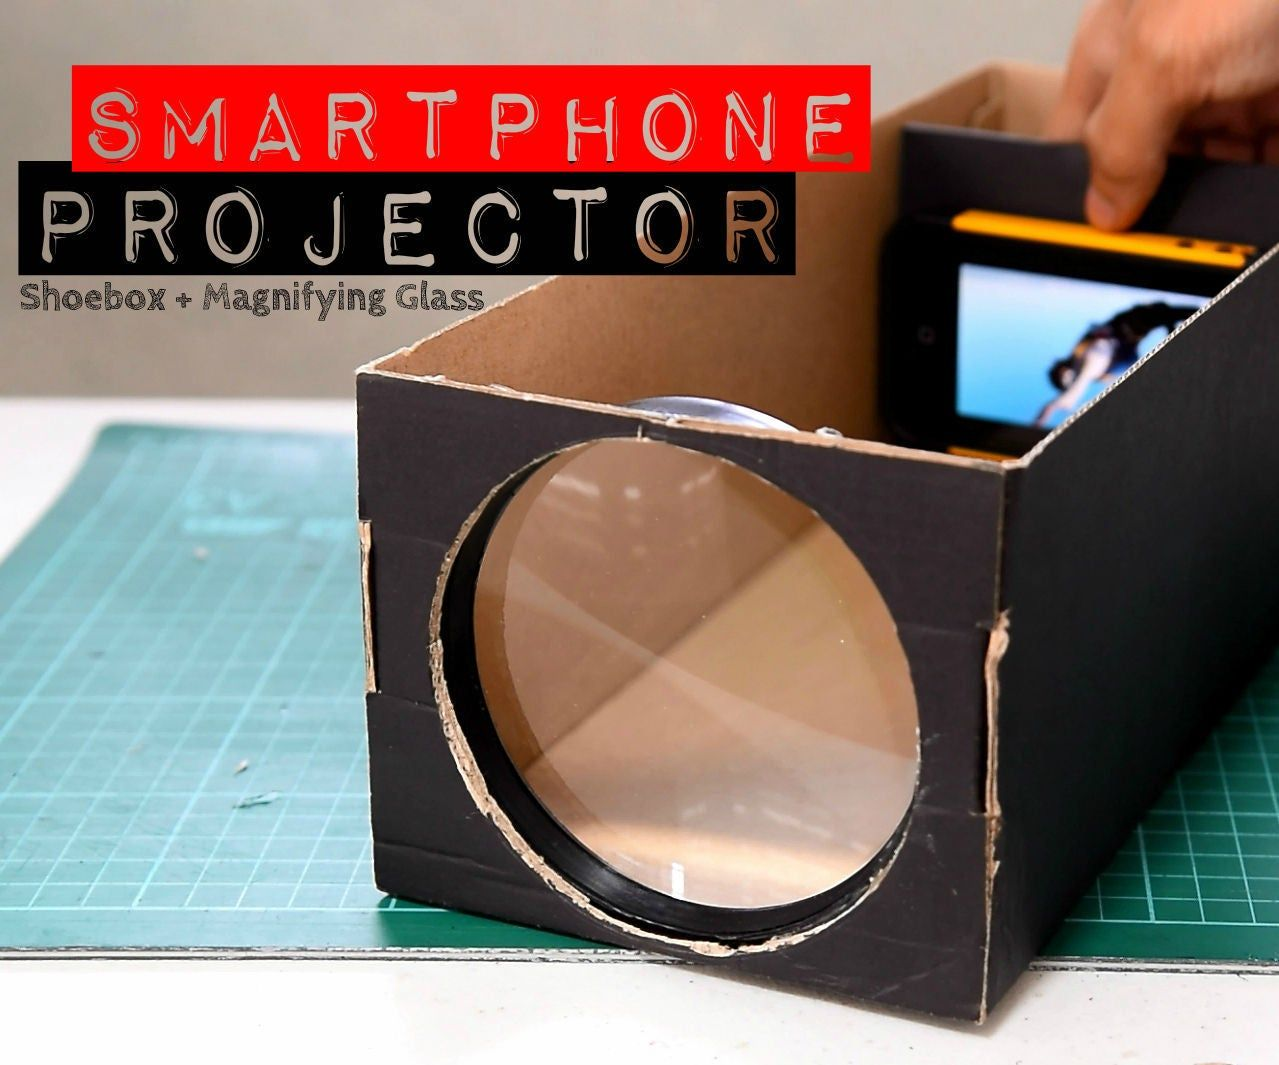 Build a Smartphone Projector With a Shoebox Iphone glass